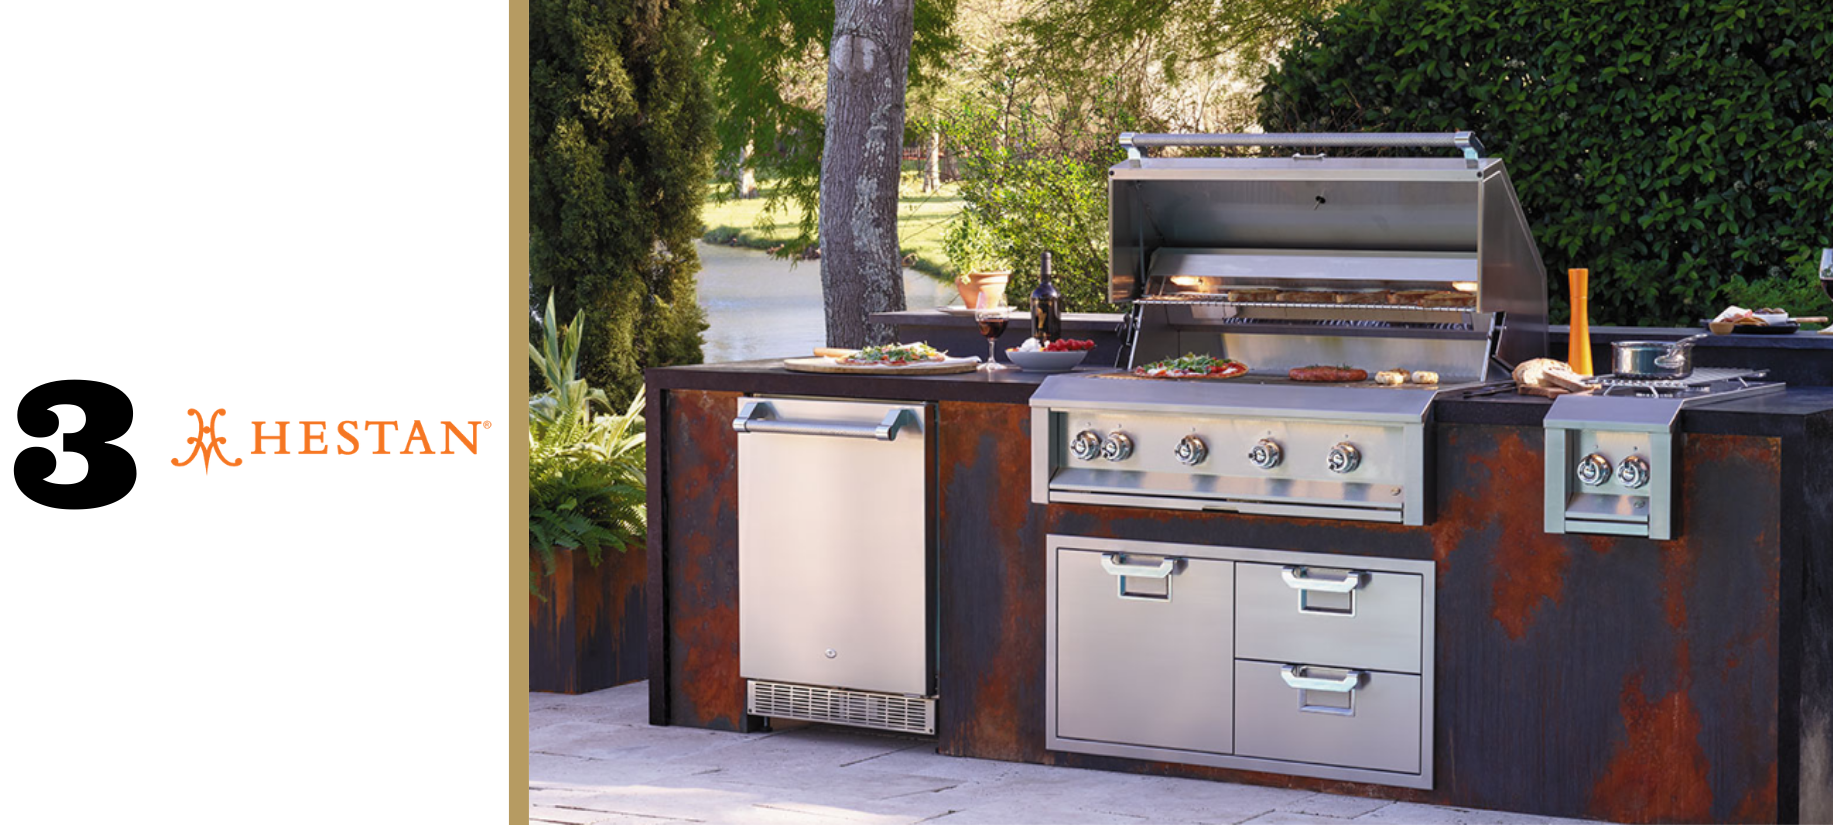 Hestan Outdoor grill with double storage doors and undercounter refrigerator